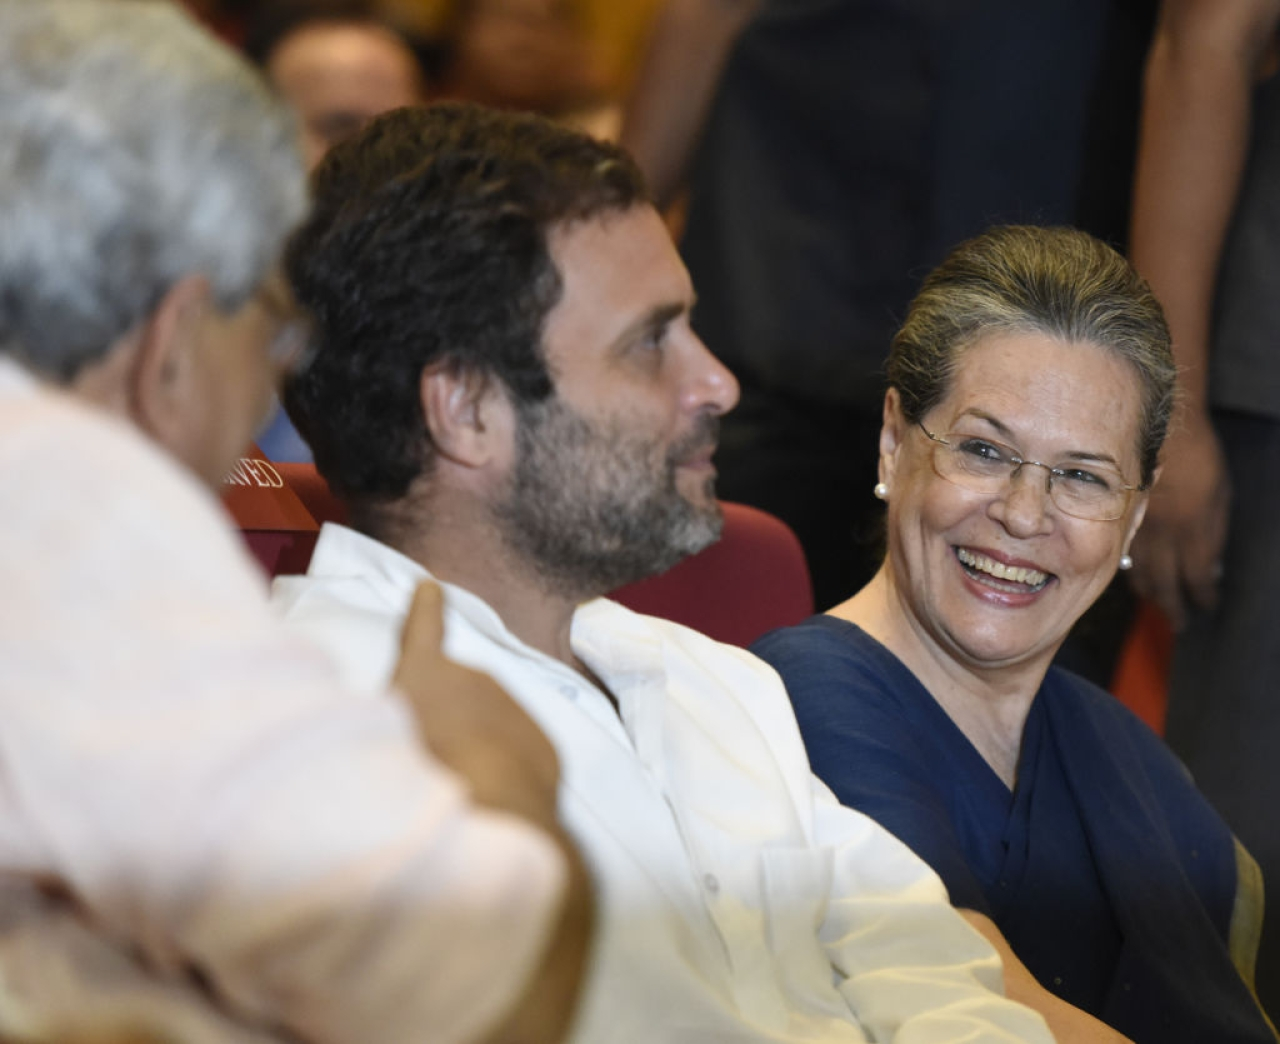 Congress vice-president Rahul Gandhi, centre,  and Congress president Sonia Gandhi, right, talking to CPI (M) leader Sitaram Yechury.  (Sonu Mehta/Hindustan Times via Getty Images)